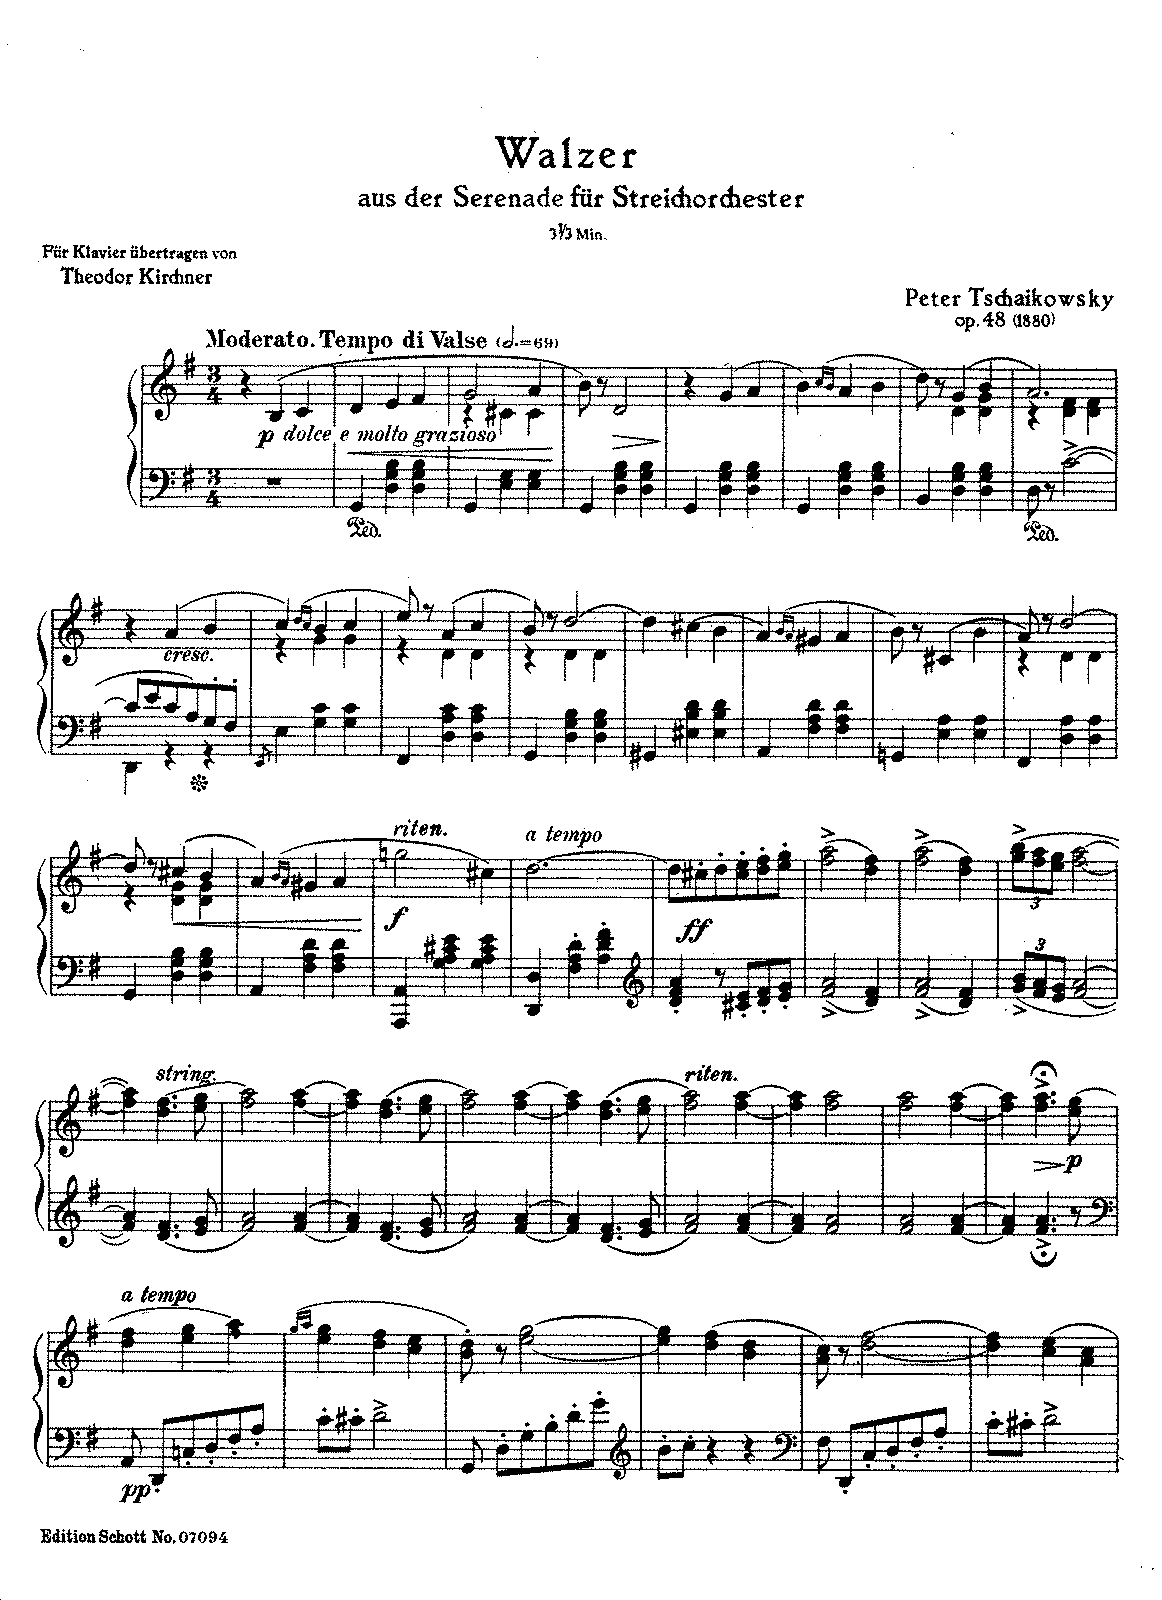 Kirchner-Tchaikovsky - Op.48 - Valse from Serenade for Strings.pdf